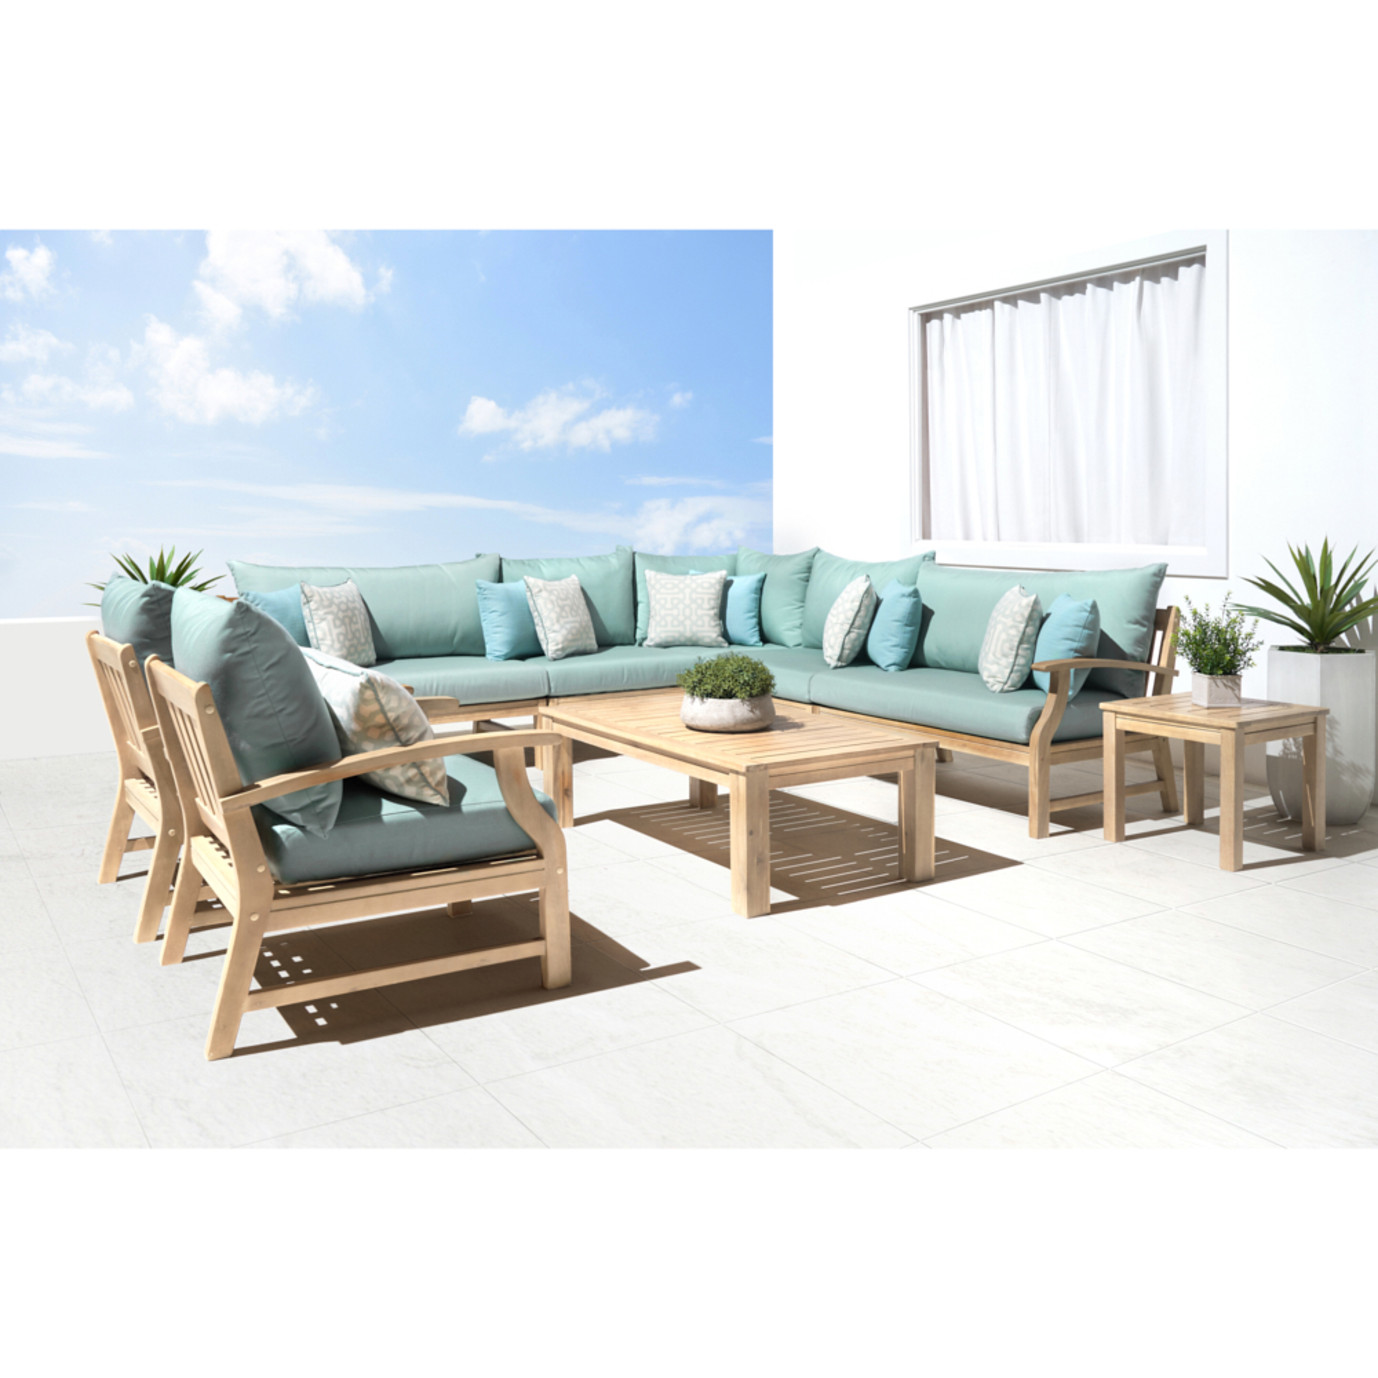 Kooper 9pc Seating Set - Spa Blue